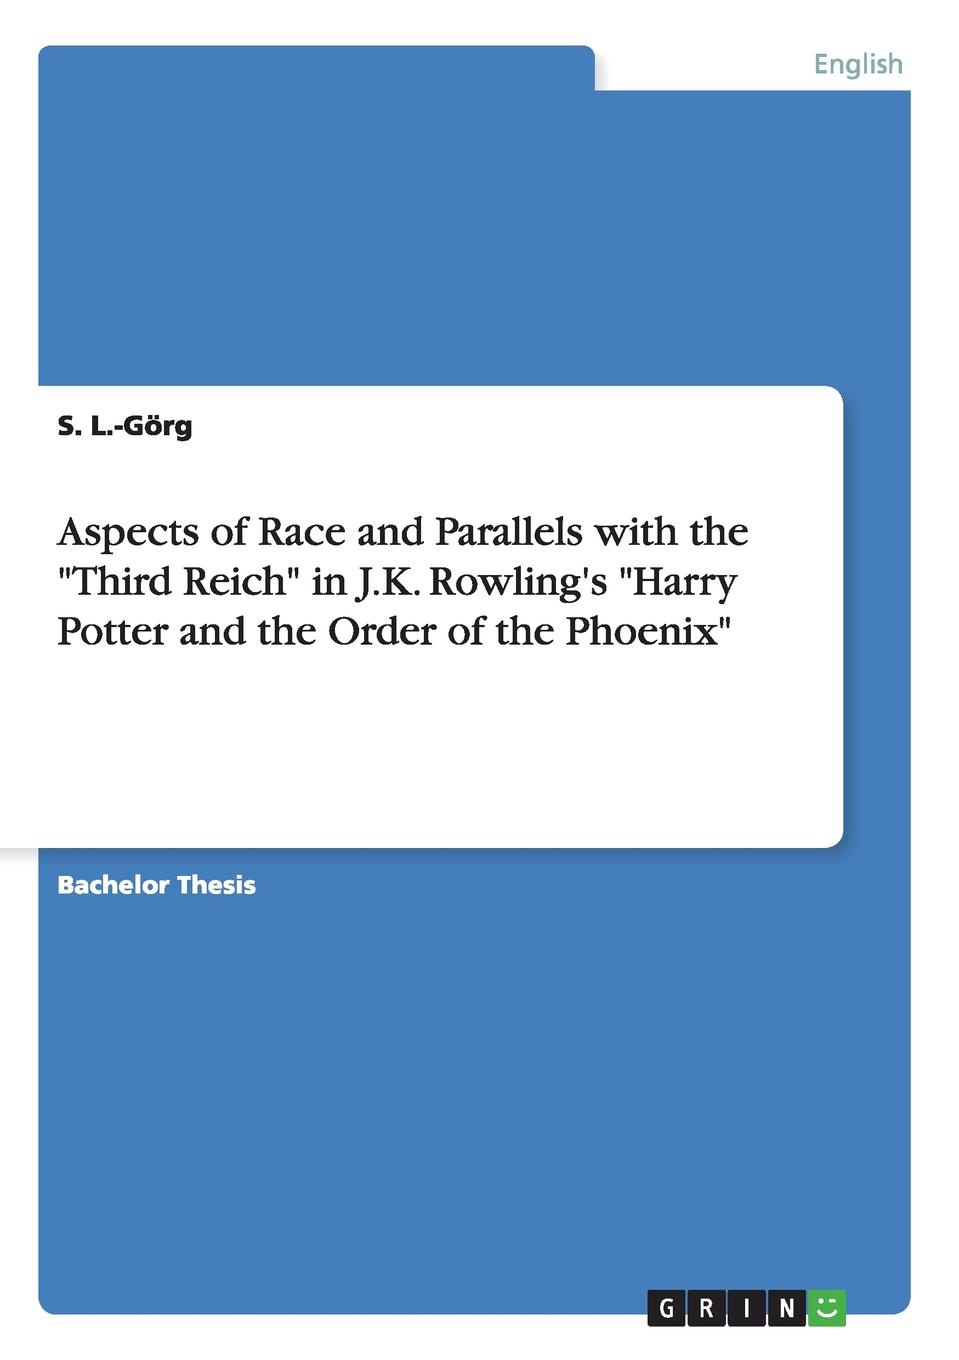 S. L.-Görg Aspects of Race and Parallels with the Third Reich in J.K. Rowling.s Harry Potter and the Order of the Phoenix